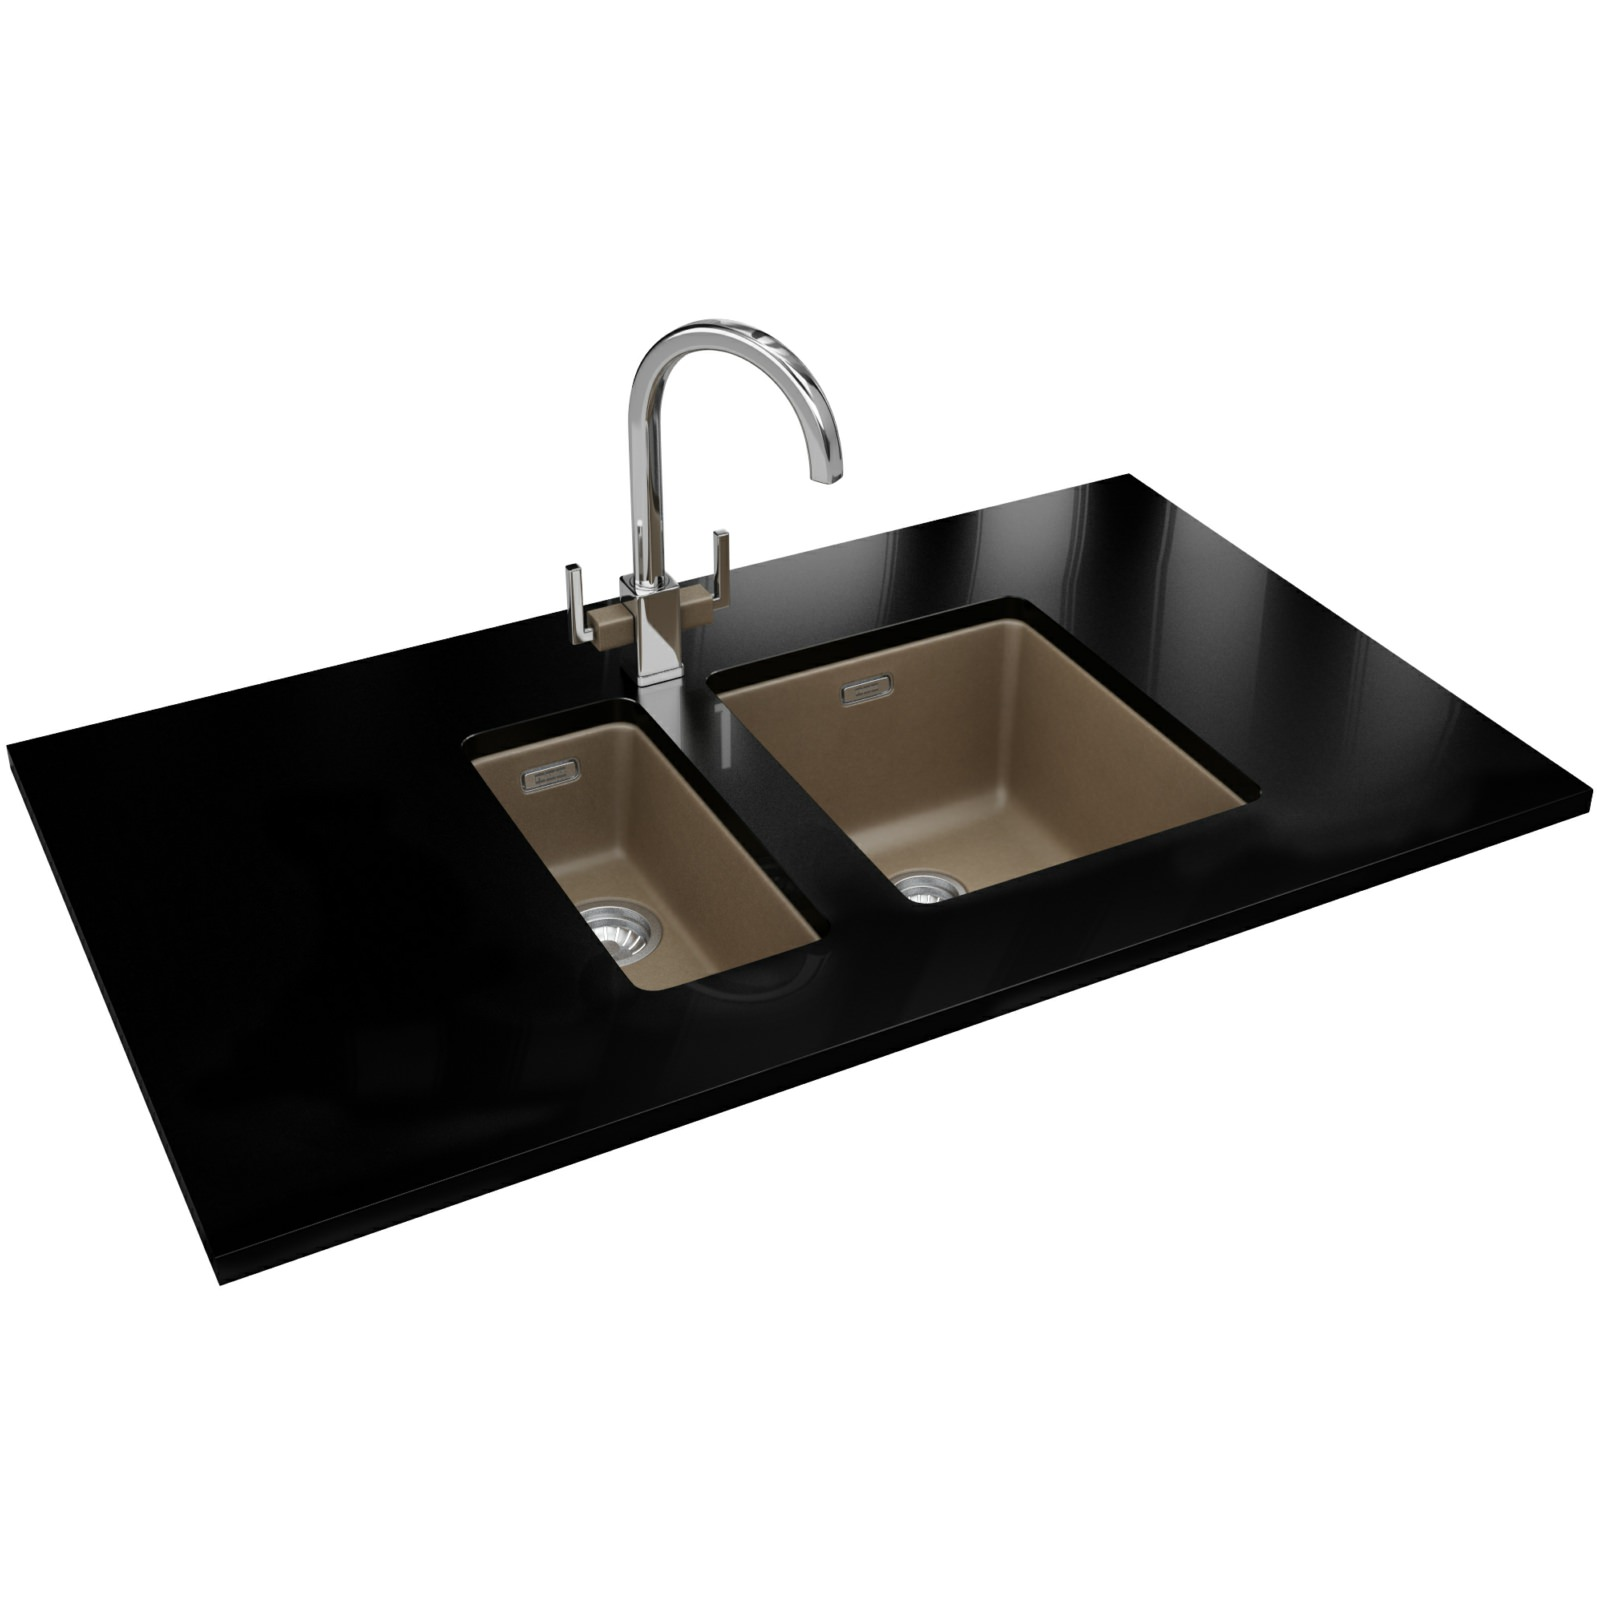 Franke Sink Kubus : Franke Kubus KBG 110 16 Fragranite Oyster 1.0 Bowl Kitchen Undermount ...